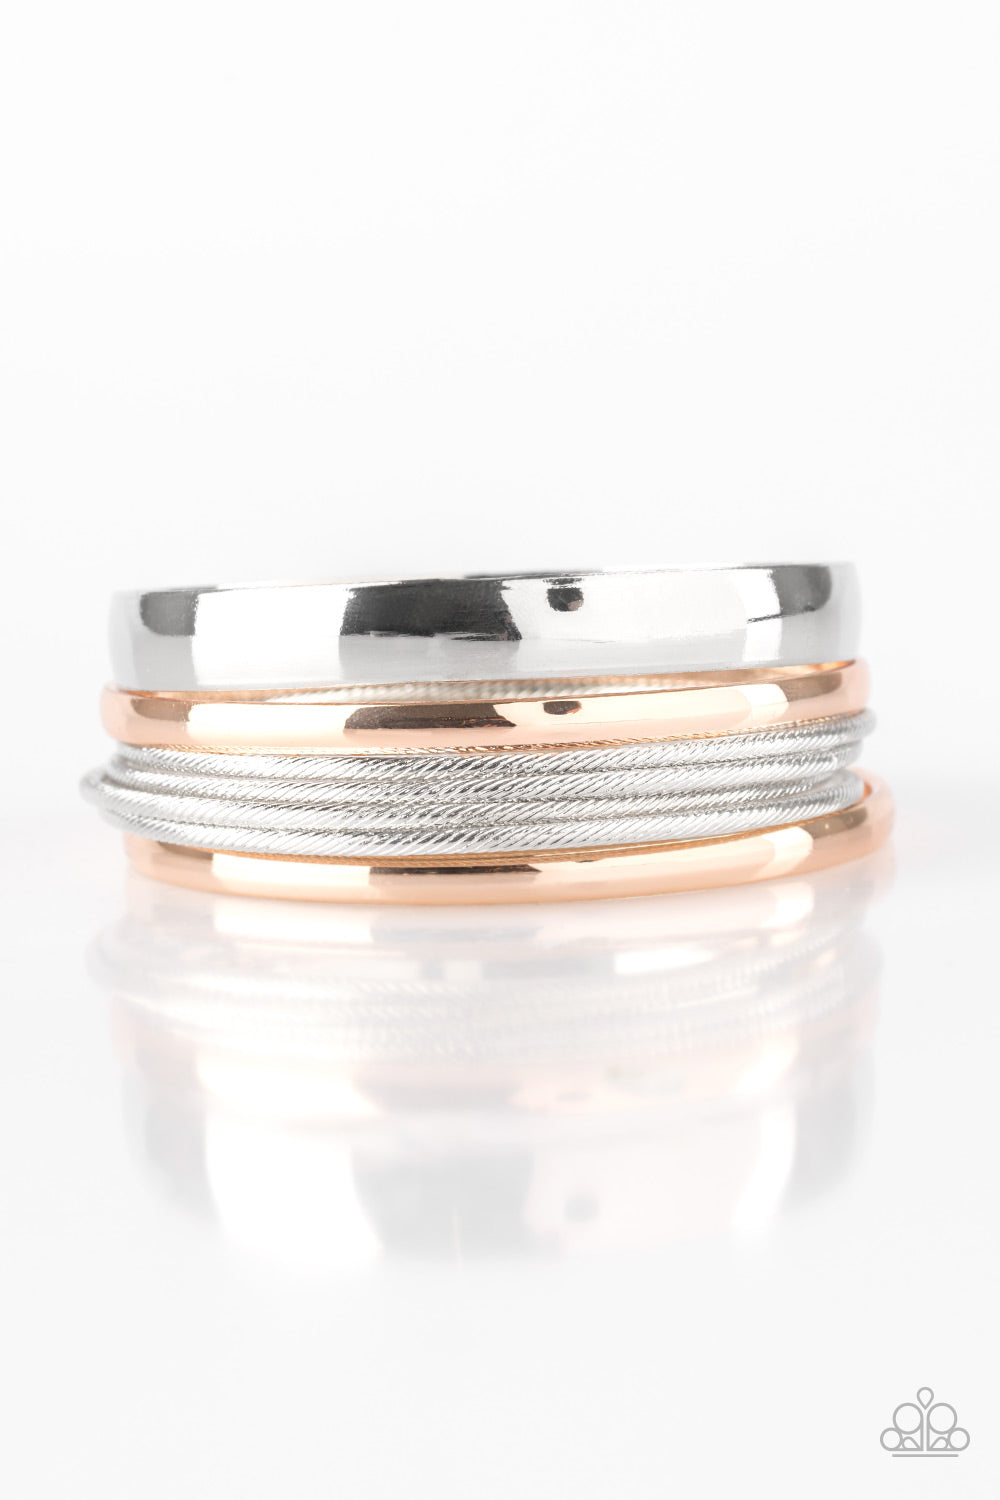 Sahara Shimmer - Silver and Rose Gold Bangle Bracelets - The Paparazzi Fox